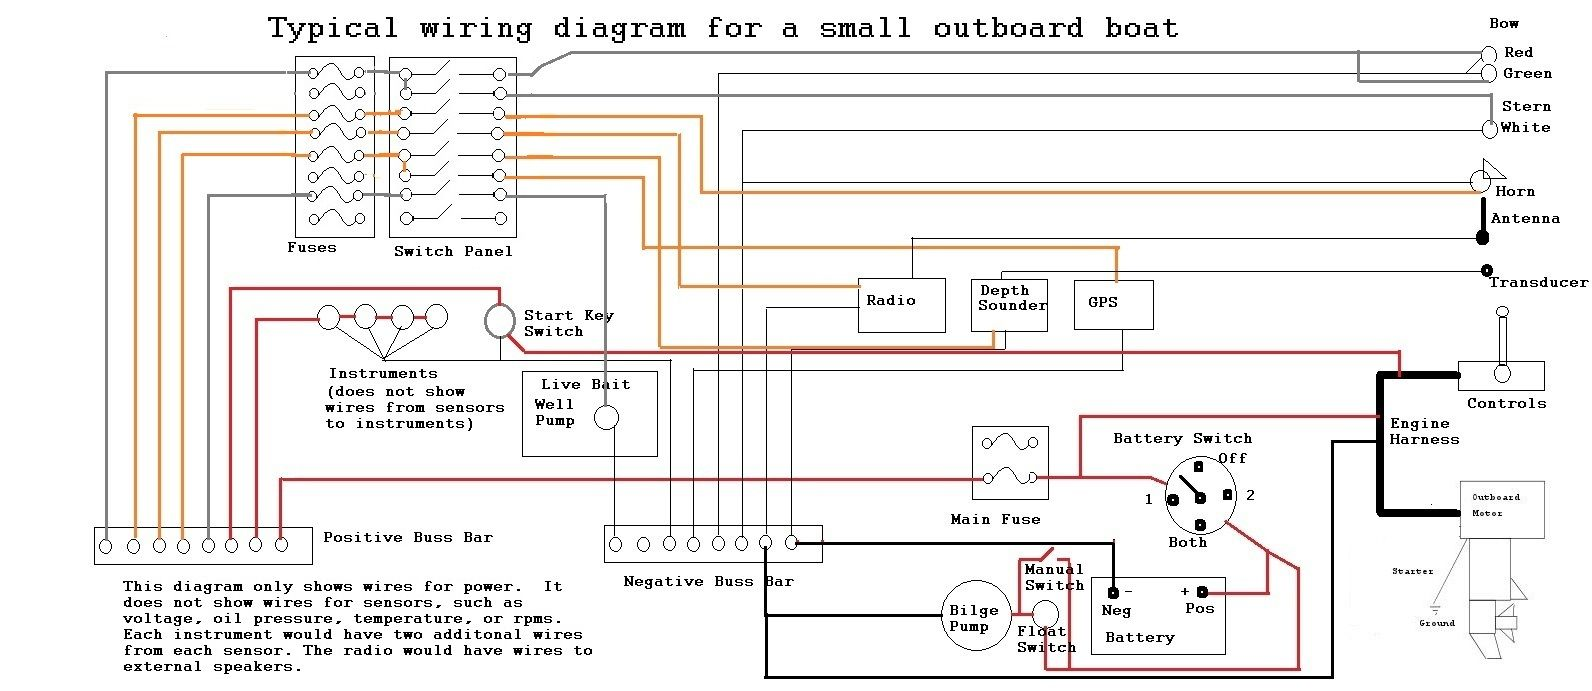 Wiring Diagram - small outboard | Boat restoration | Pinterest ...